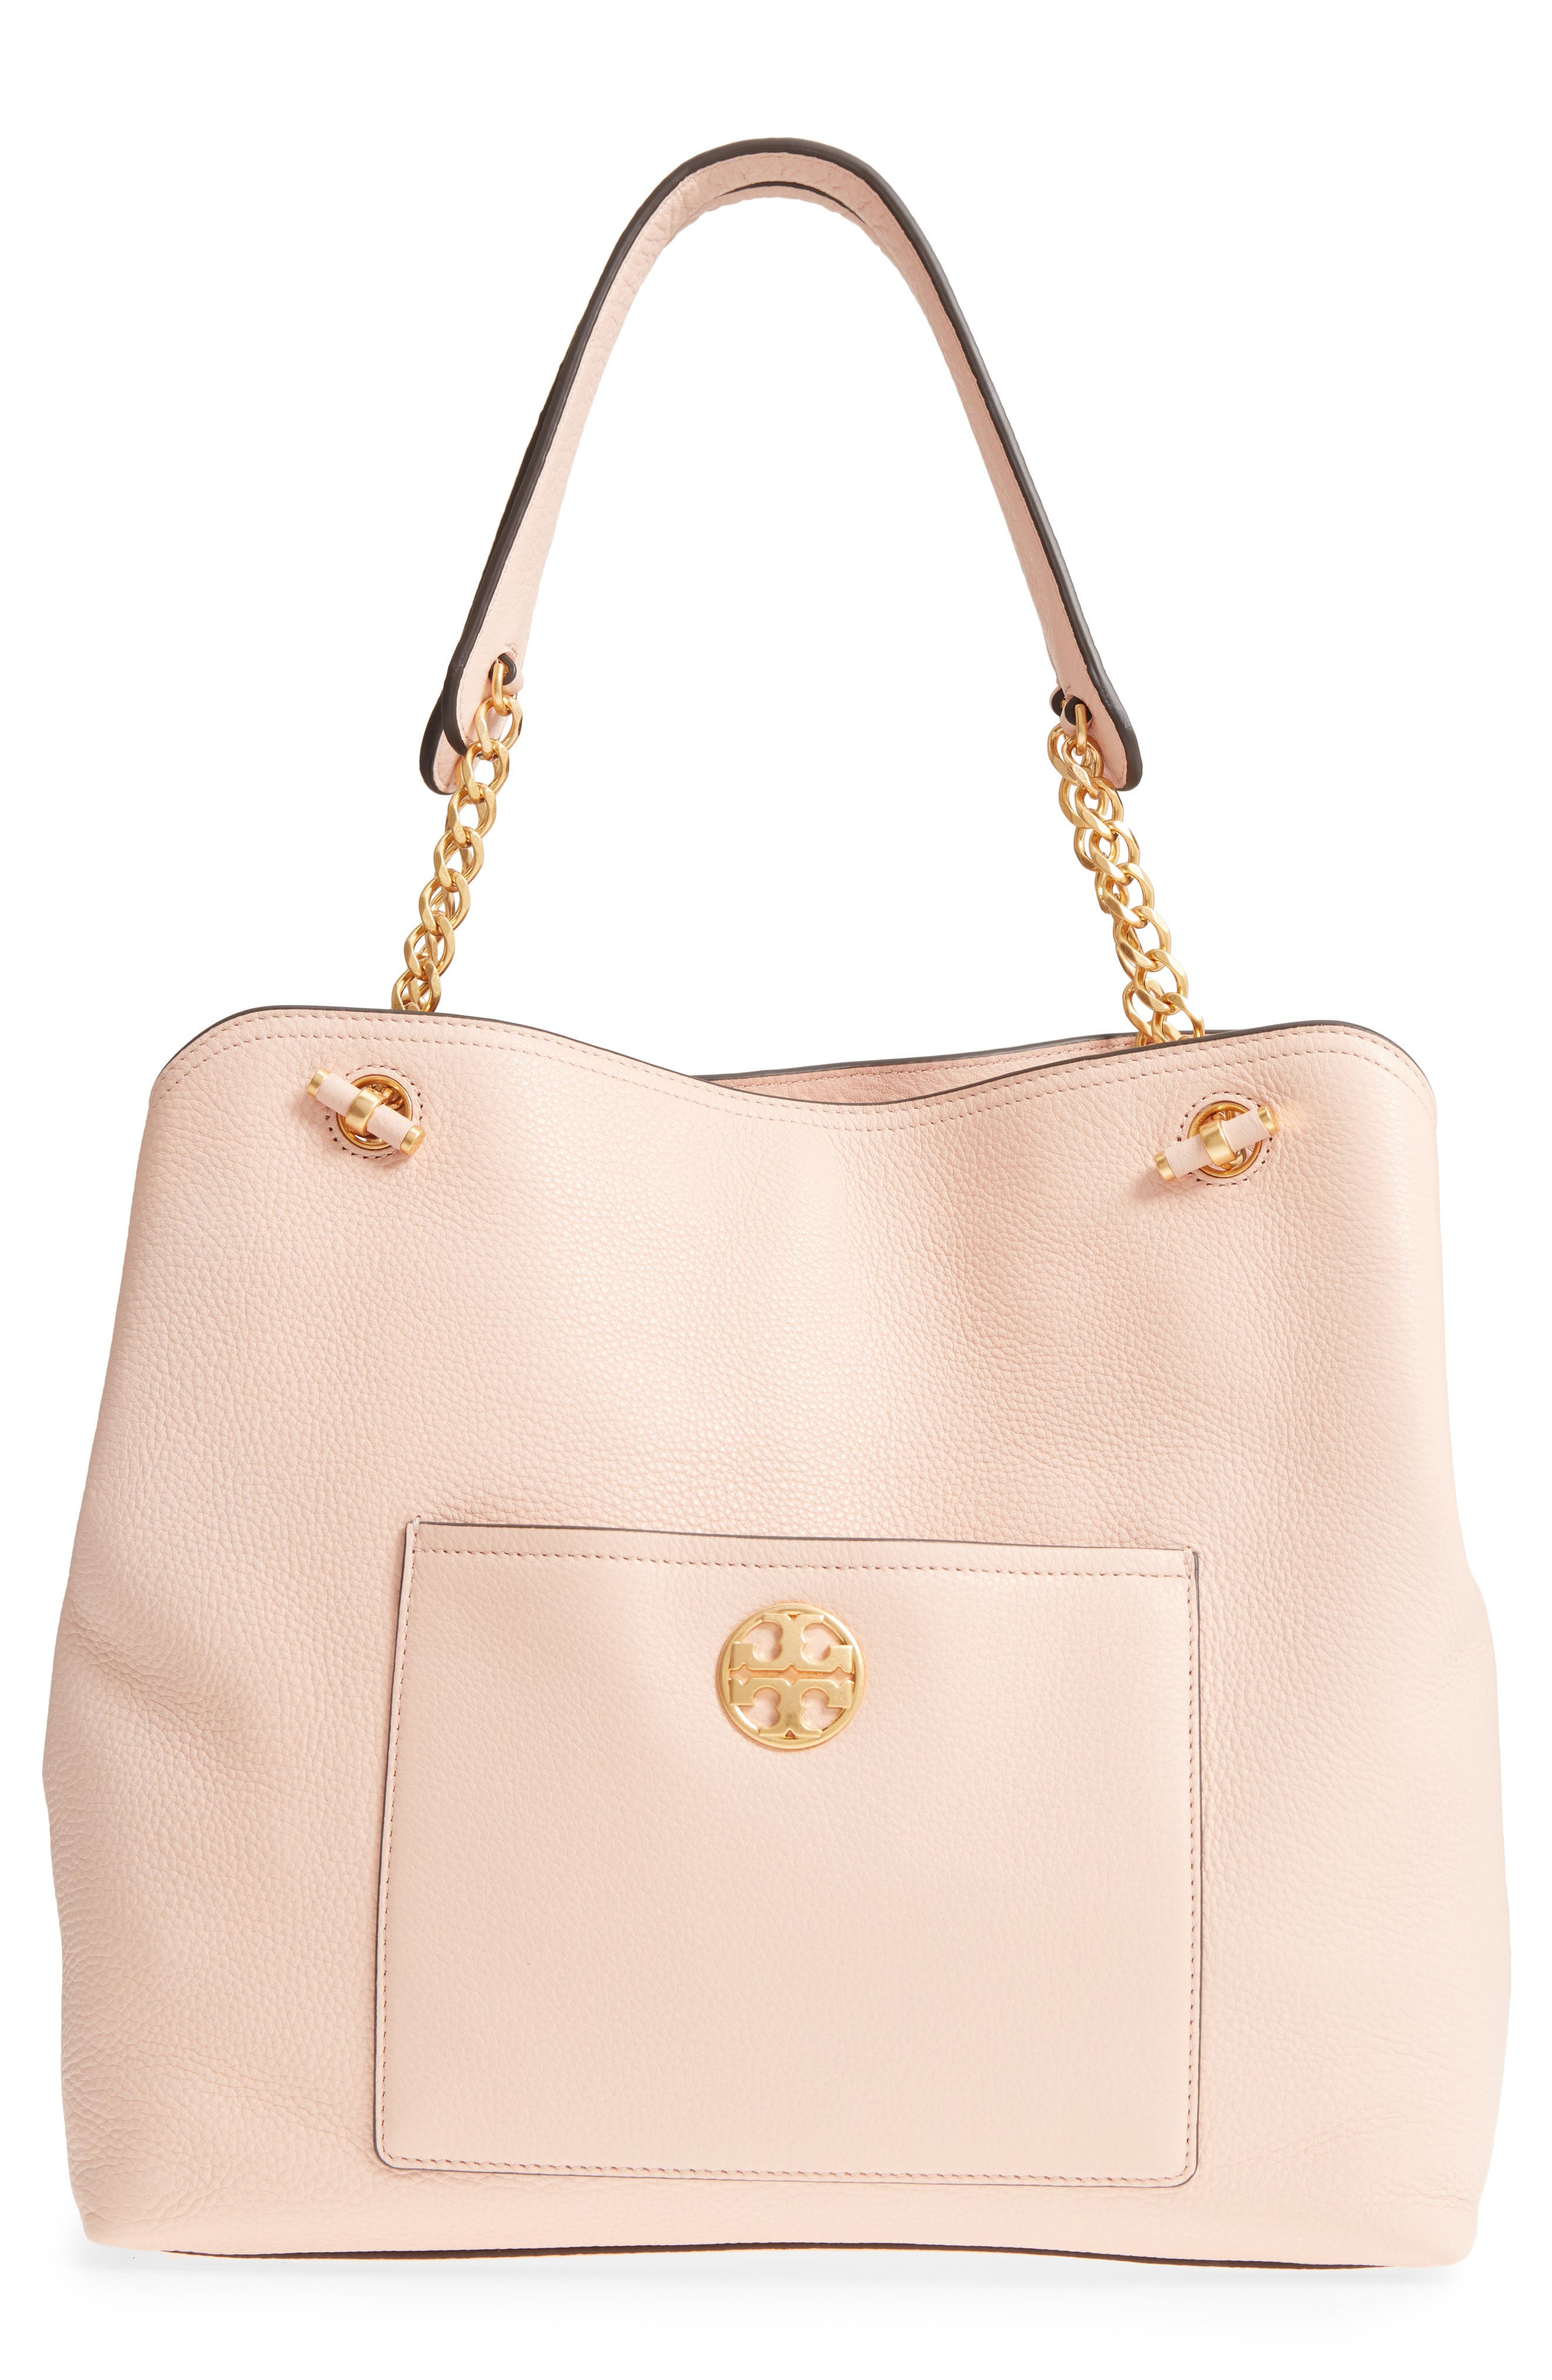 CHELSEA SLOUCHY LEATHER TOTE - PINK